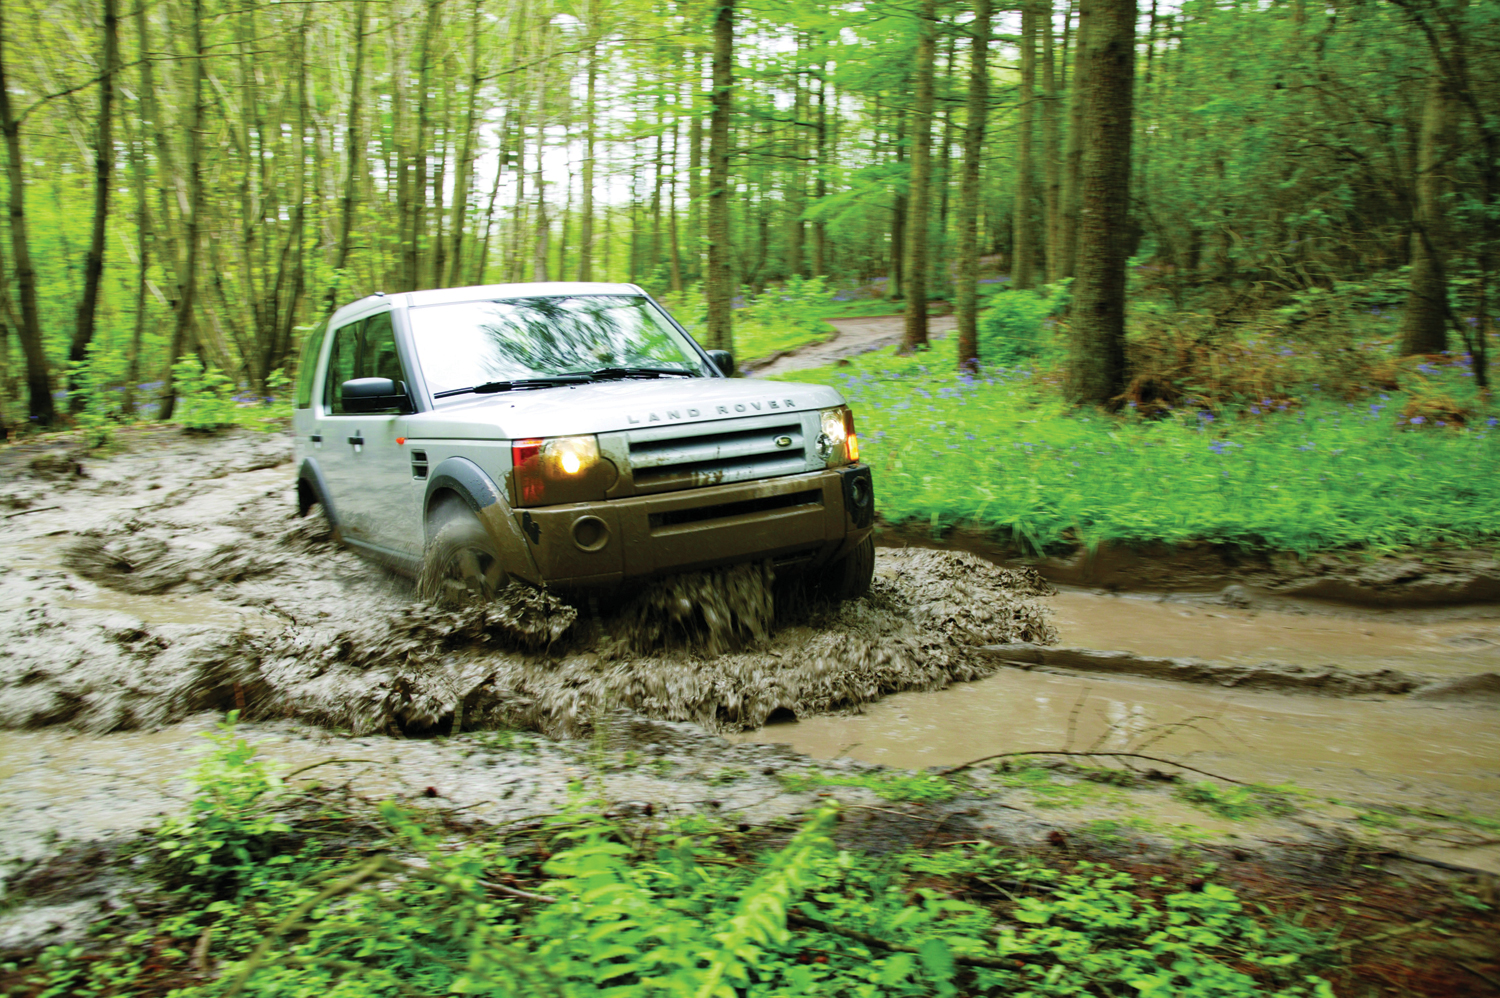 Ben noto BUYING USED: LAND ROVER DISCOVERY 3 | 4X4 Magazine IO06